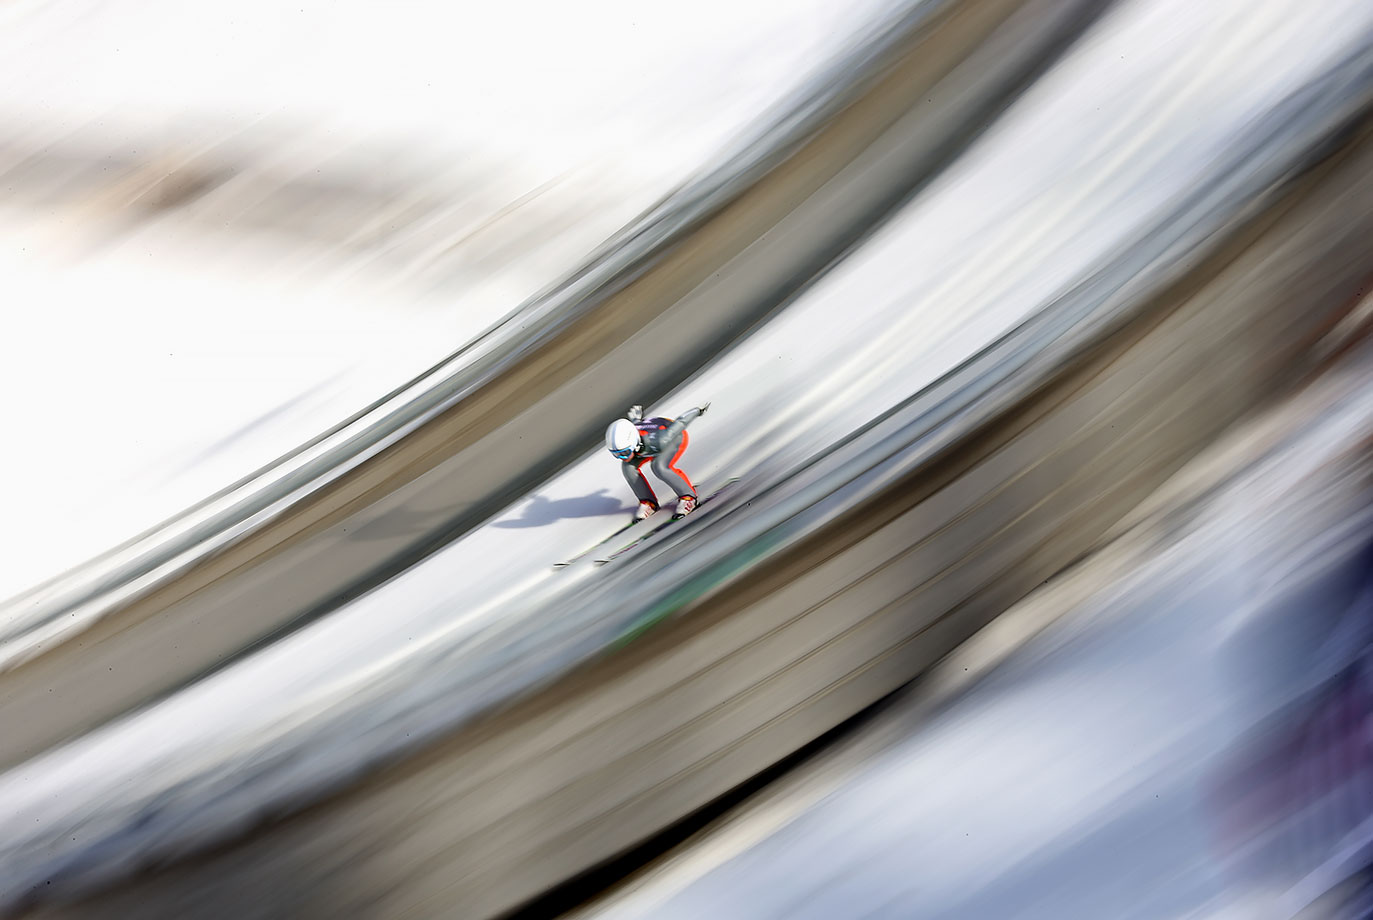 Ema Klinec (SLO) competes in the Ski Jumping Ladies' Individual Competition at Lysgårdsbakken Ski Jumping Arena on Feb. 16, 2016 during the Winter Youth Olympic Games in Lillehammer, Norway.